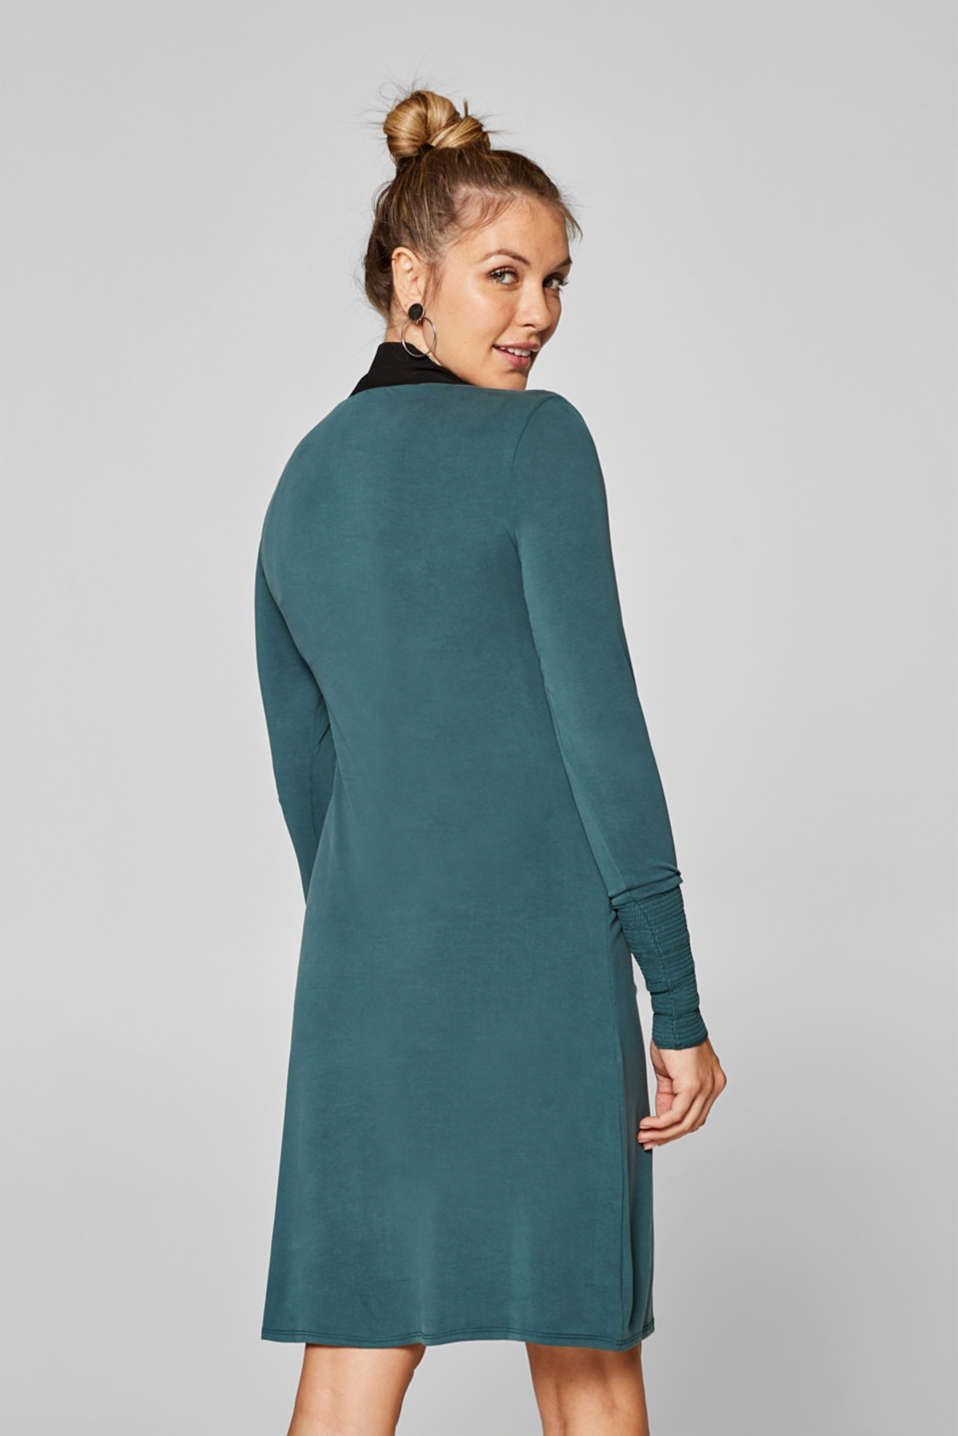 Nursing dress in stretch jersey with a chiffon scarf, LCDARK TEAL GREE, detail image number 2